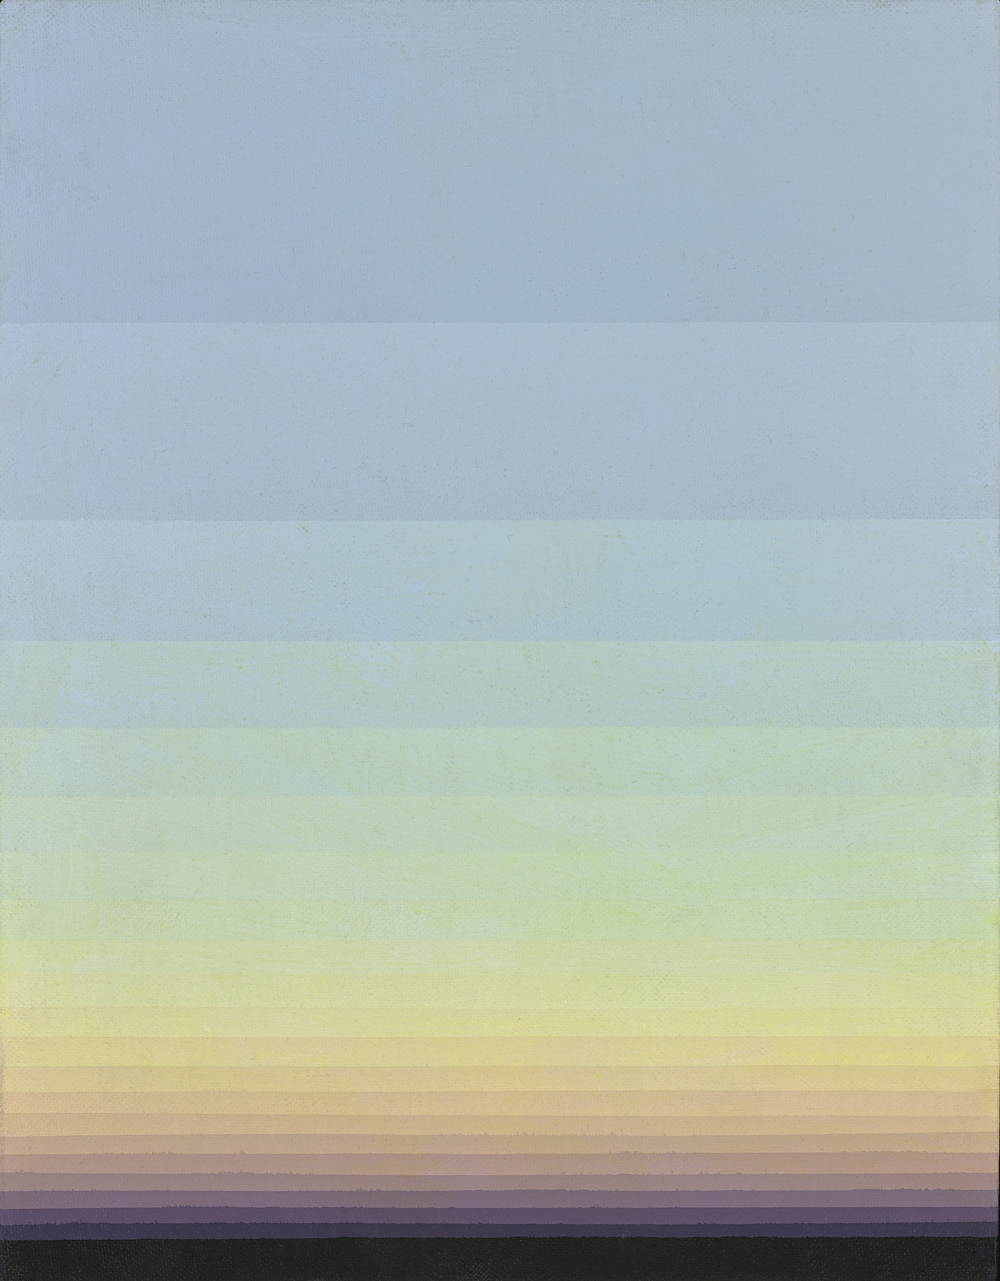 Norman Zammitt, Grey 28A, 1986, acrylic on canvasboard, 11 x 14 inches; 27.9 x 35.6 centimeters